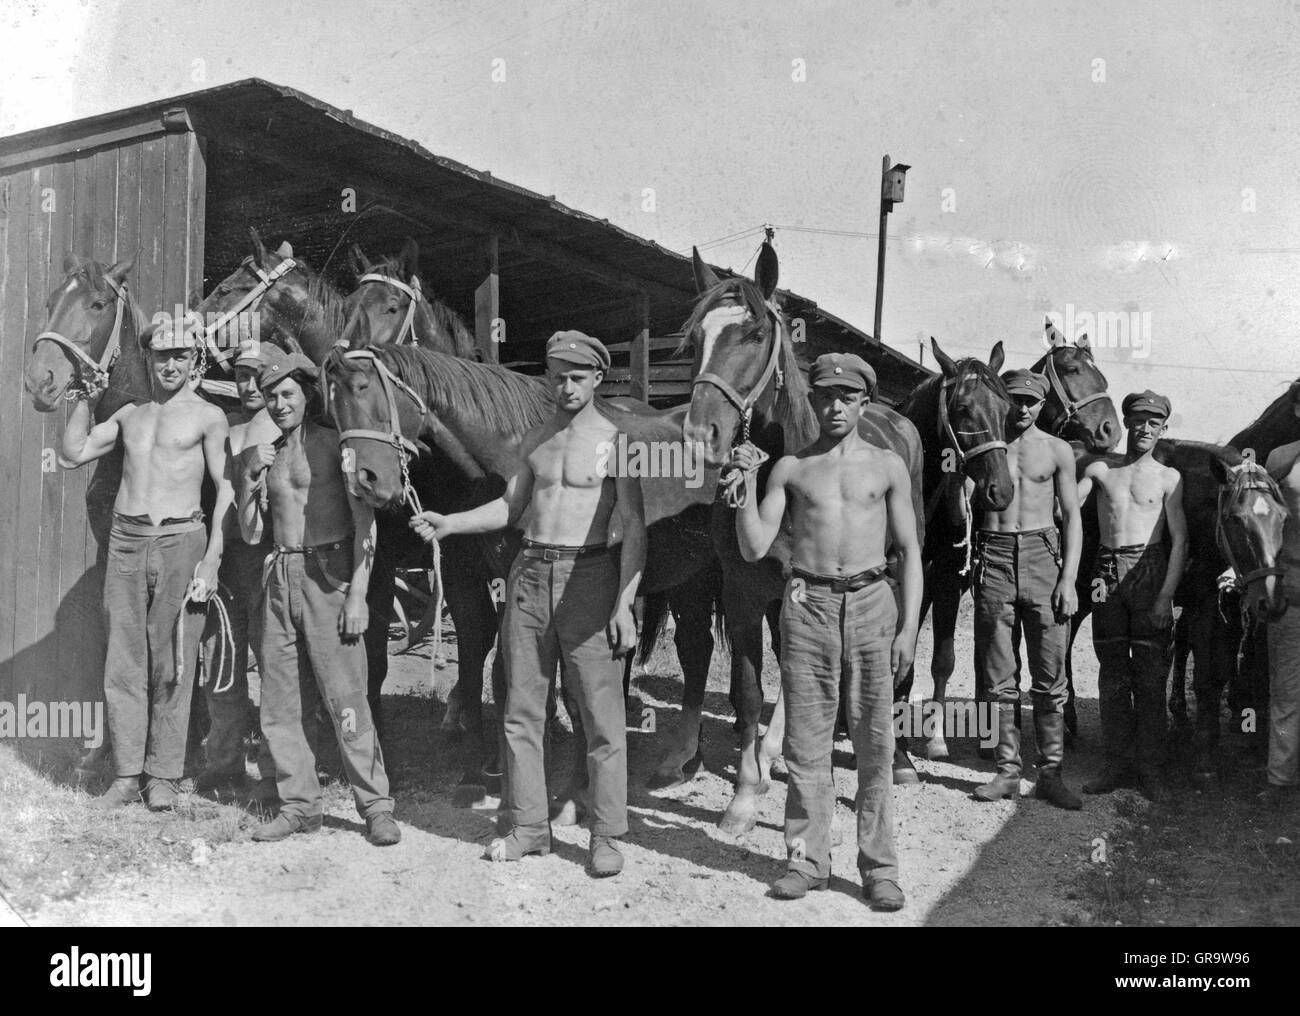 1934 German Soldiers With Horses - Stock Image